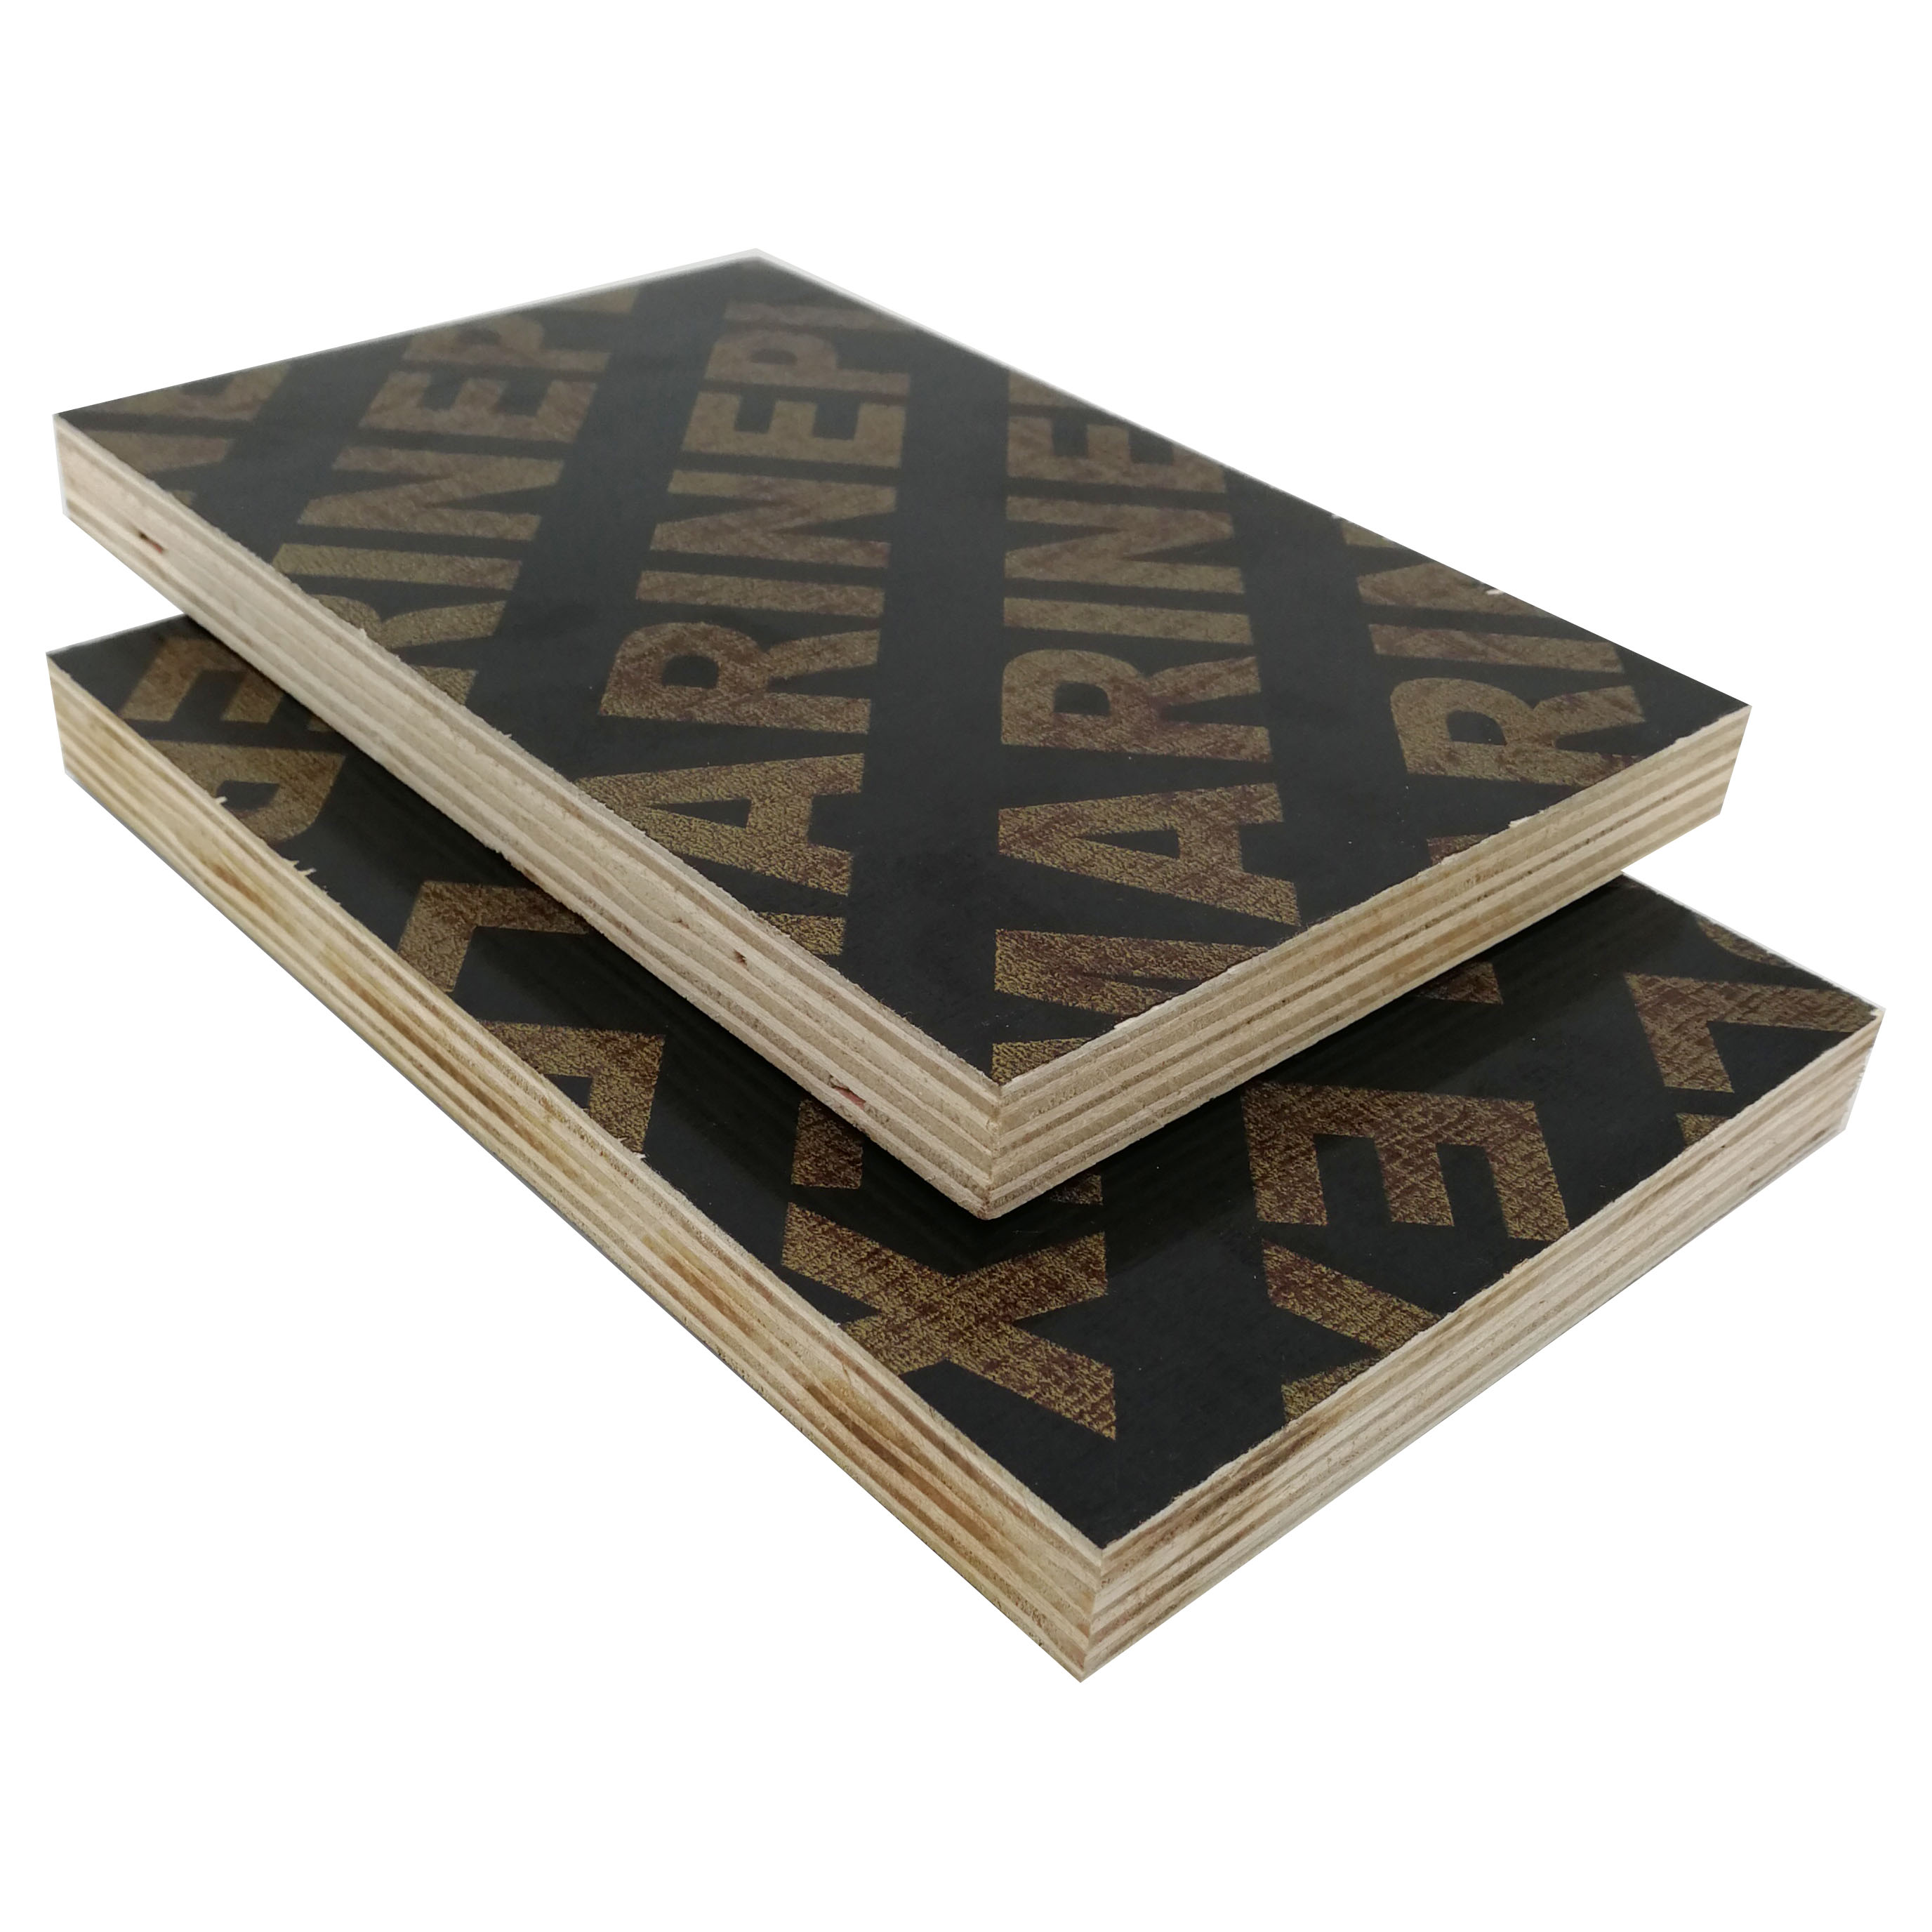 Crocodile Brand Marine Plywood 1 4 Marine Plywood Price Philippines Buy Marine Plywood 3 4 Price Philippines Construction Film Faced Plywood Waterproof Film Faced Plywood Product On Alibaba Com